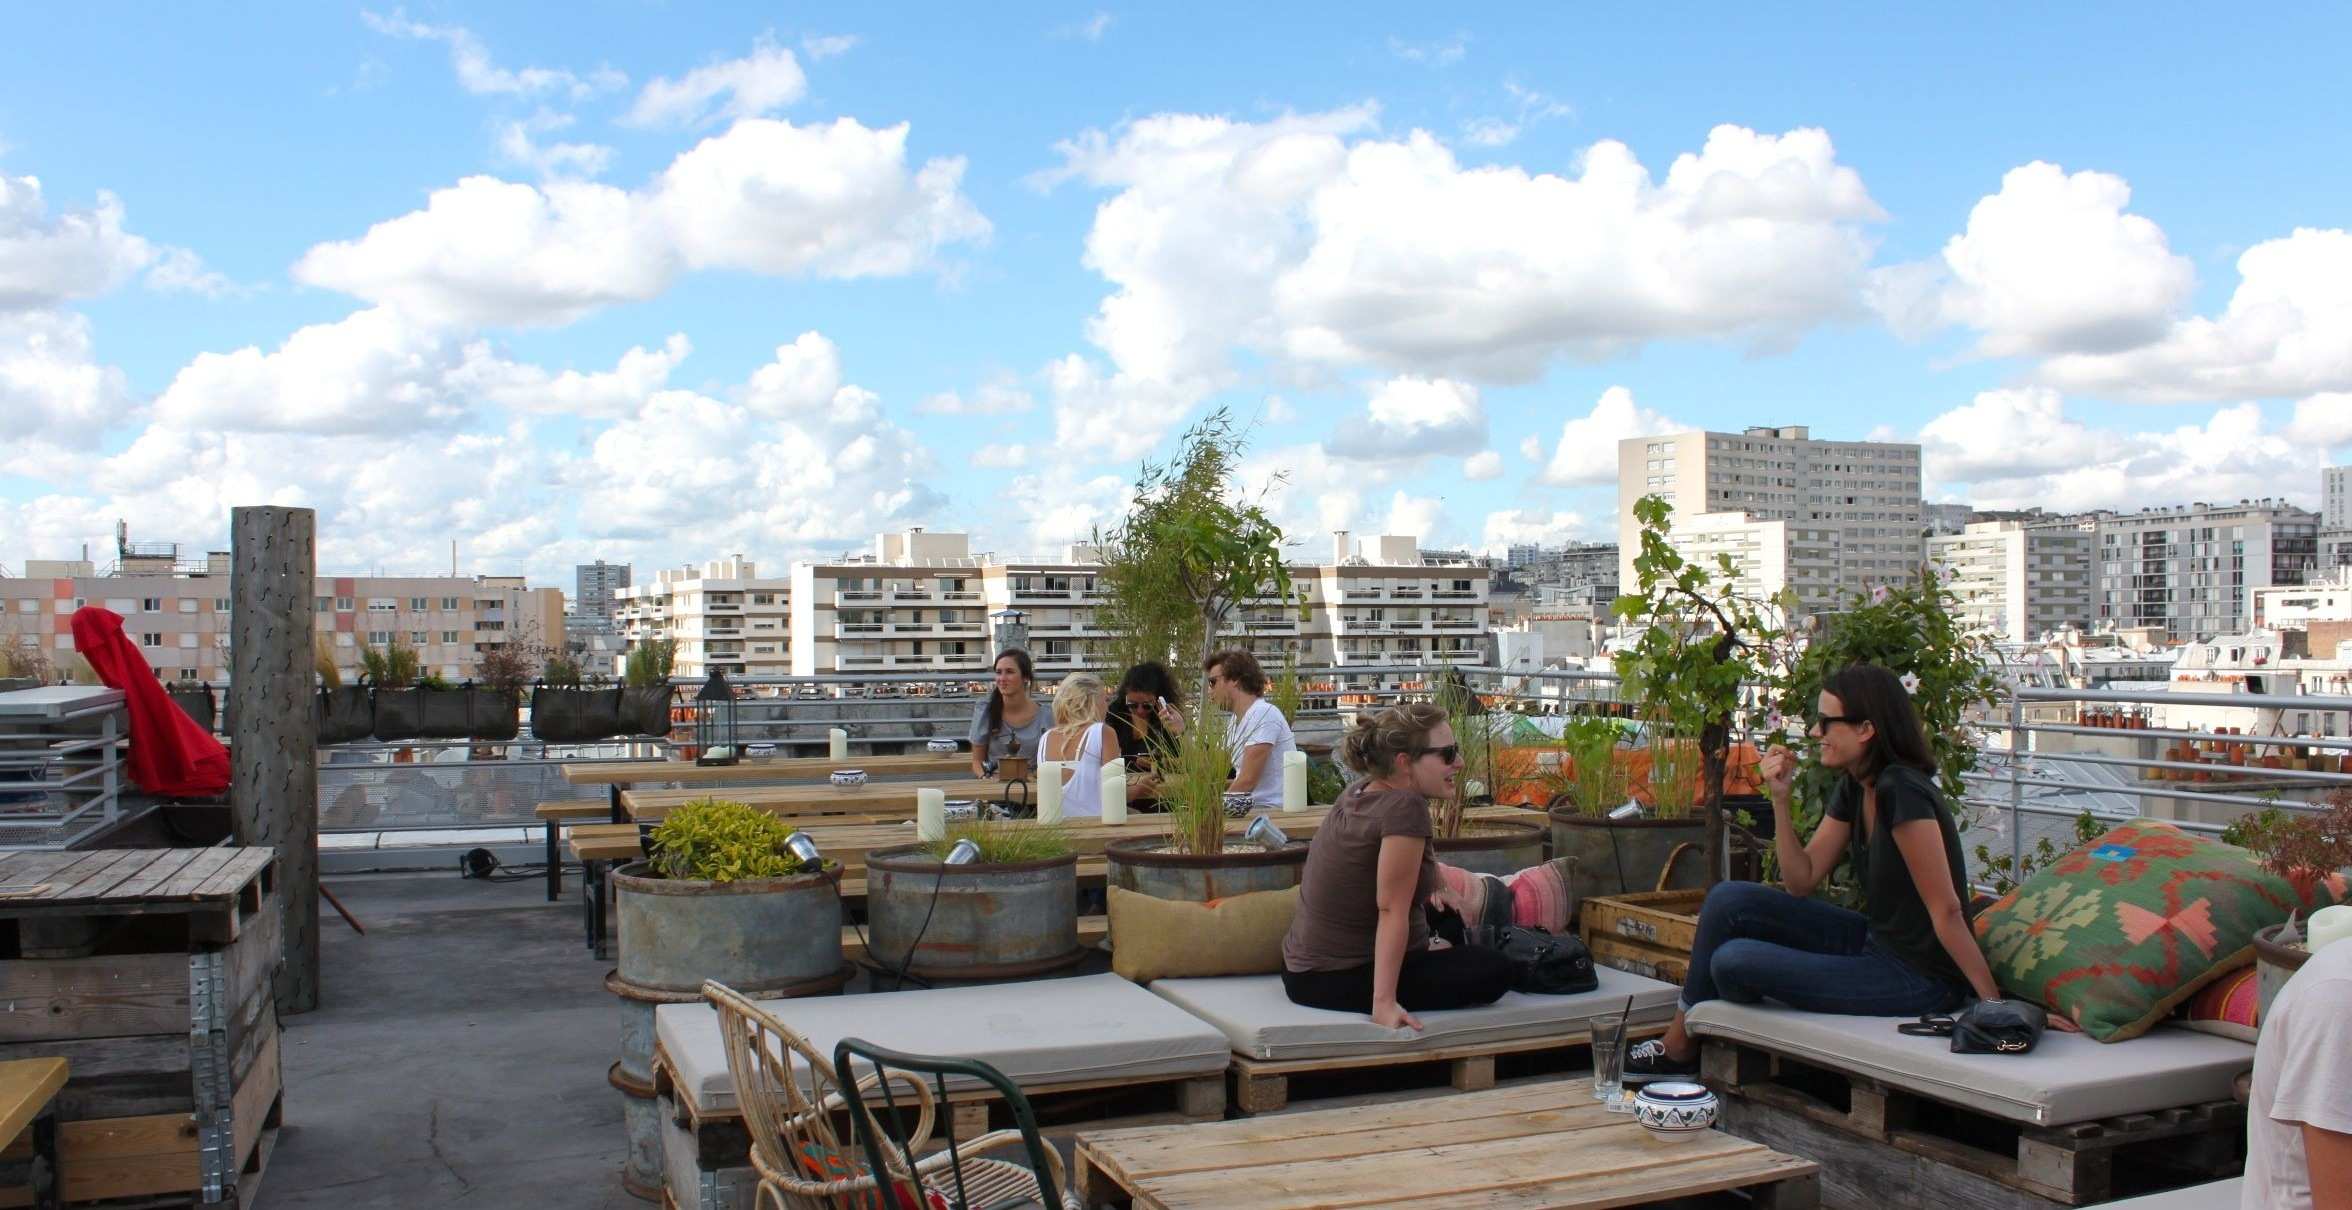 Toit Terrasse Restaurant Paris The Best Rooftop Bars In Paris Bars And Restaurants Time